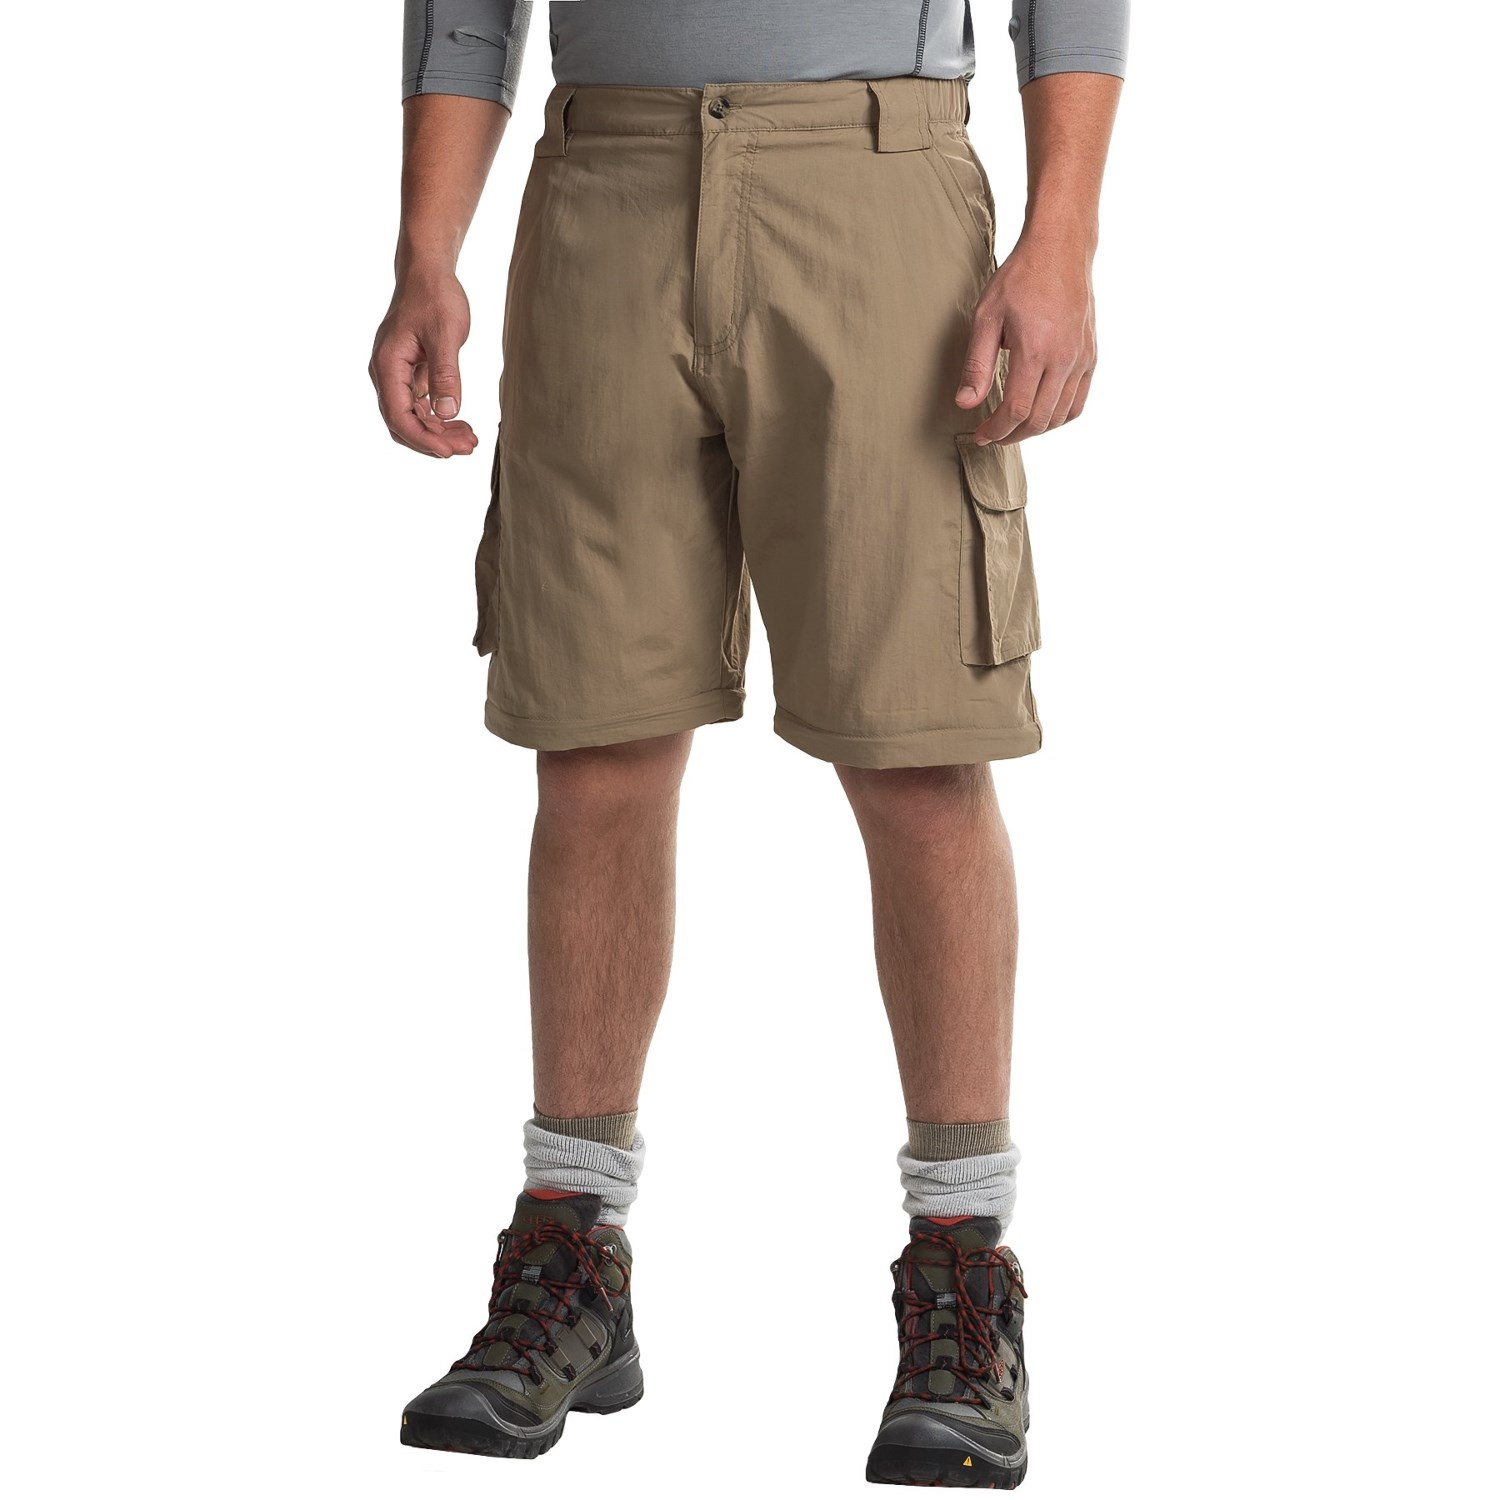 TROUSERS - Shorts Dry Lake Wholesale Price Sale Online 2018 Cheap Online Outlet 100% Authentic Buy Cheap Exclusive Flshq3